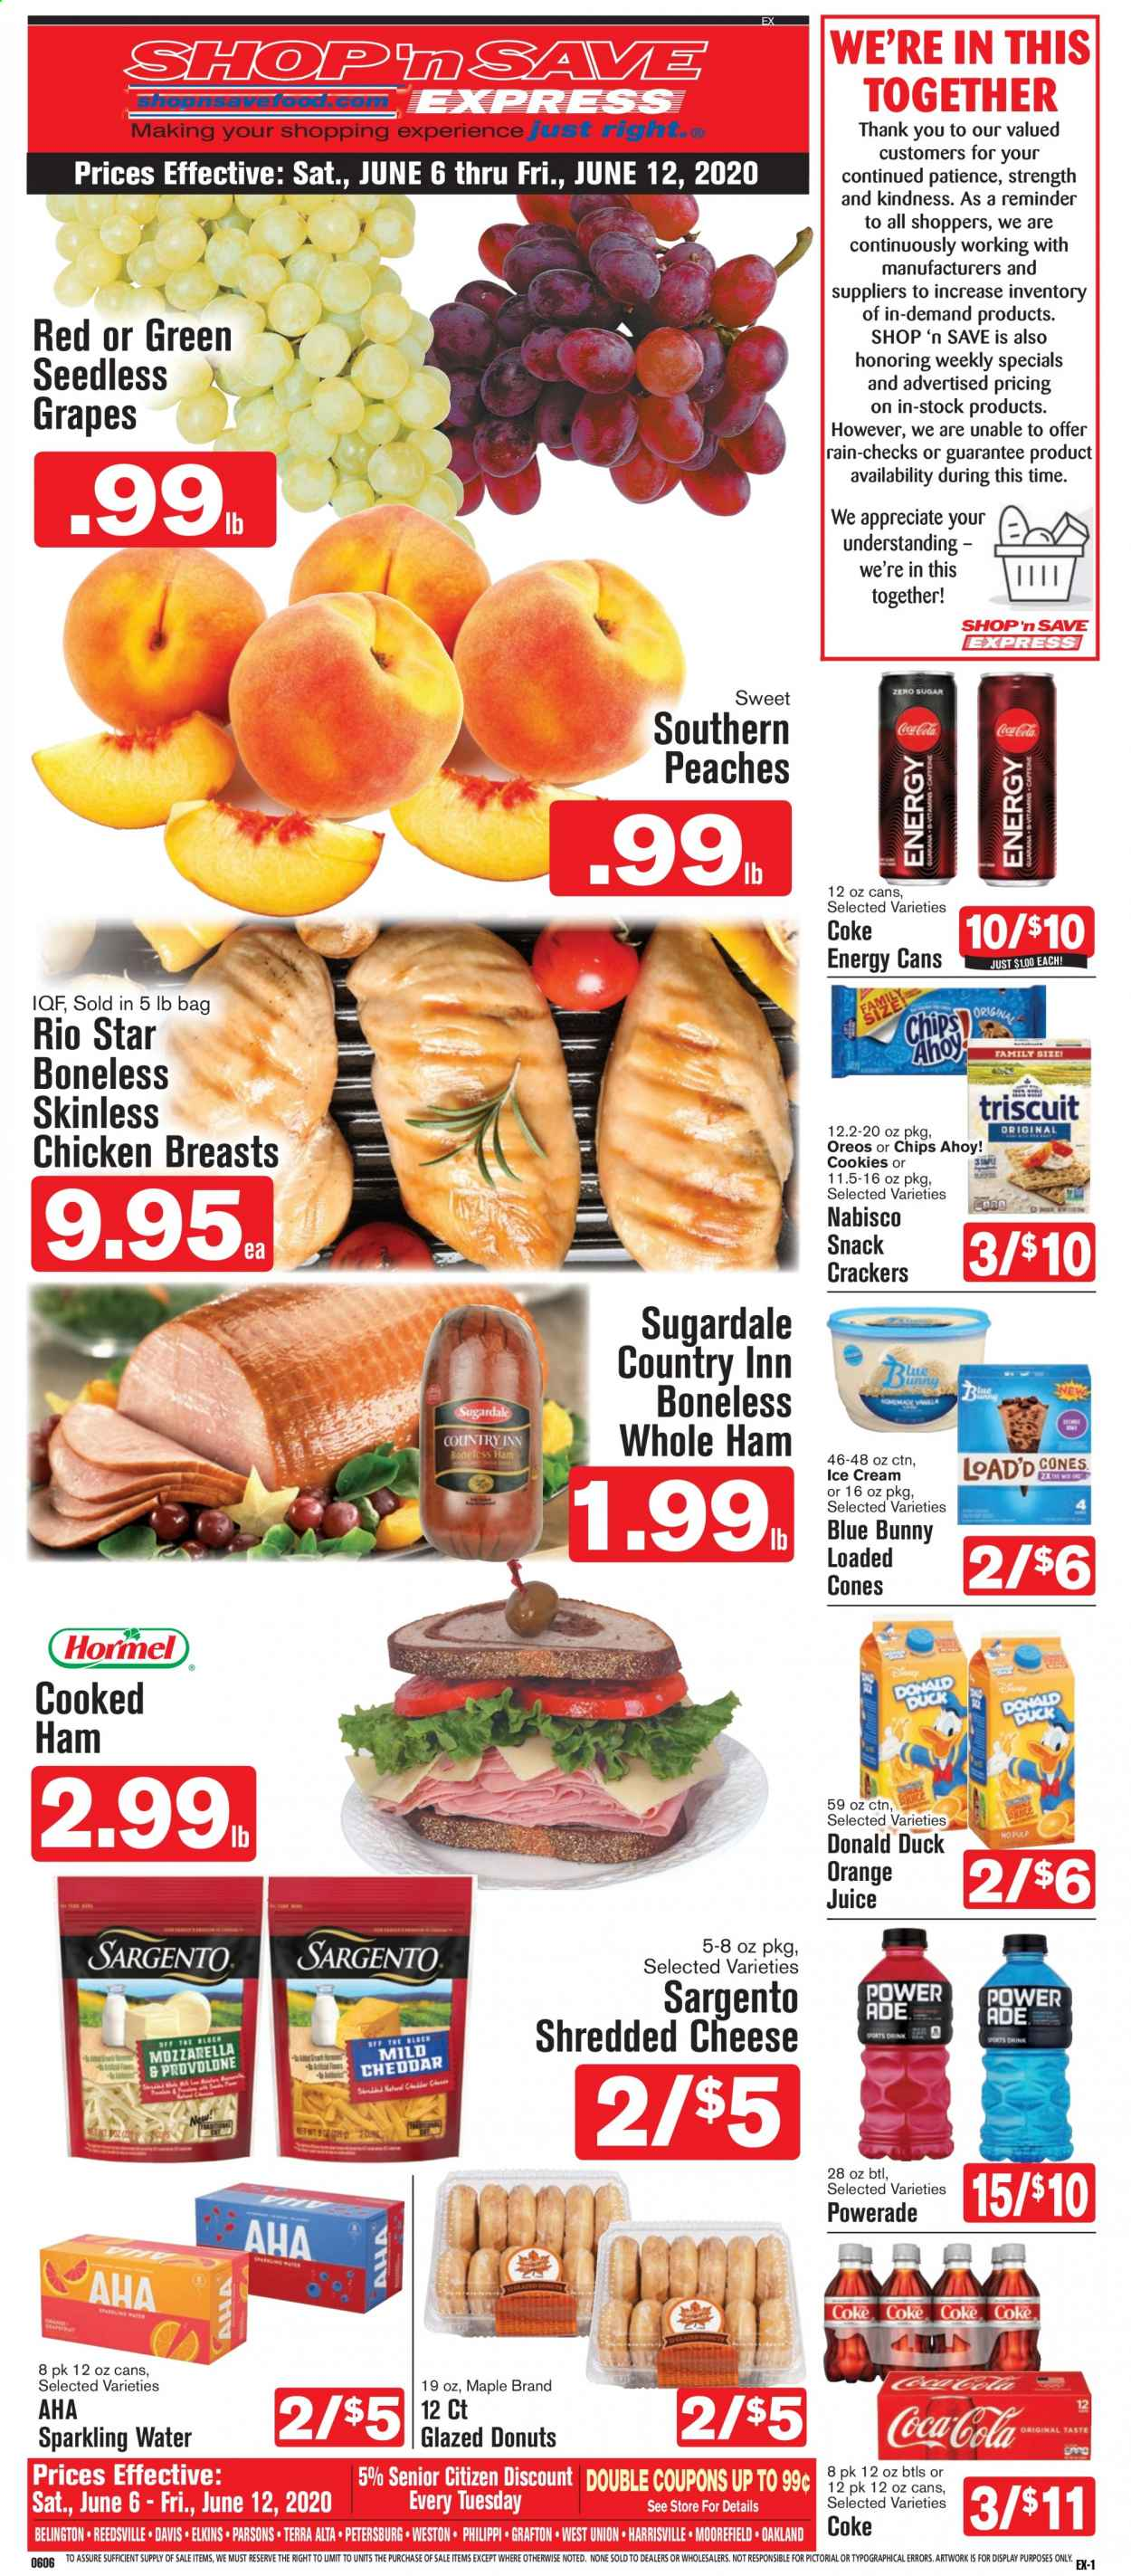 Shop 'n Save (Pittsburgh) Flyer  - 06.06.2020 - 06.12.2020. Page 1.